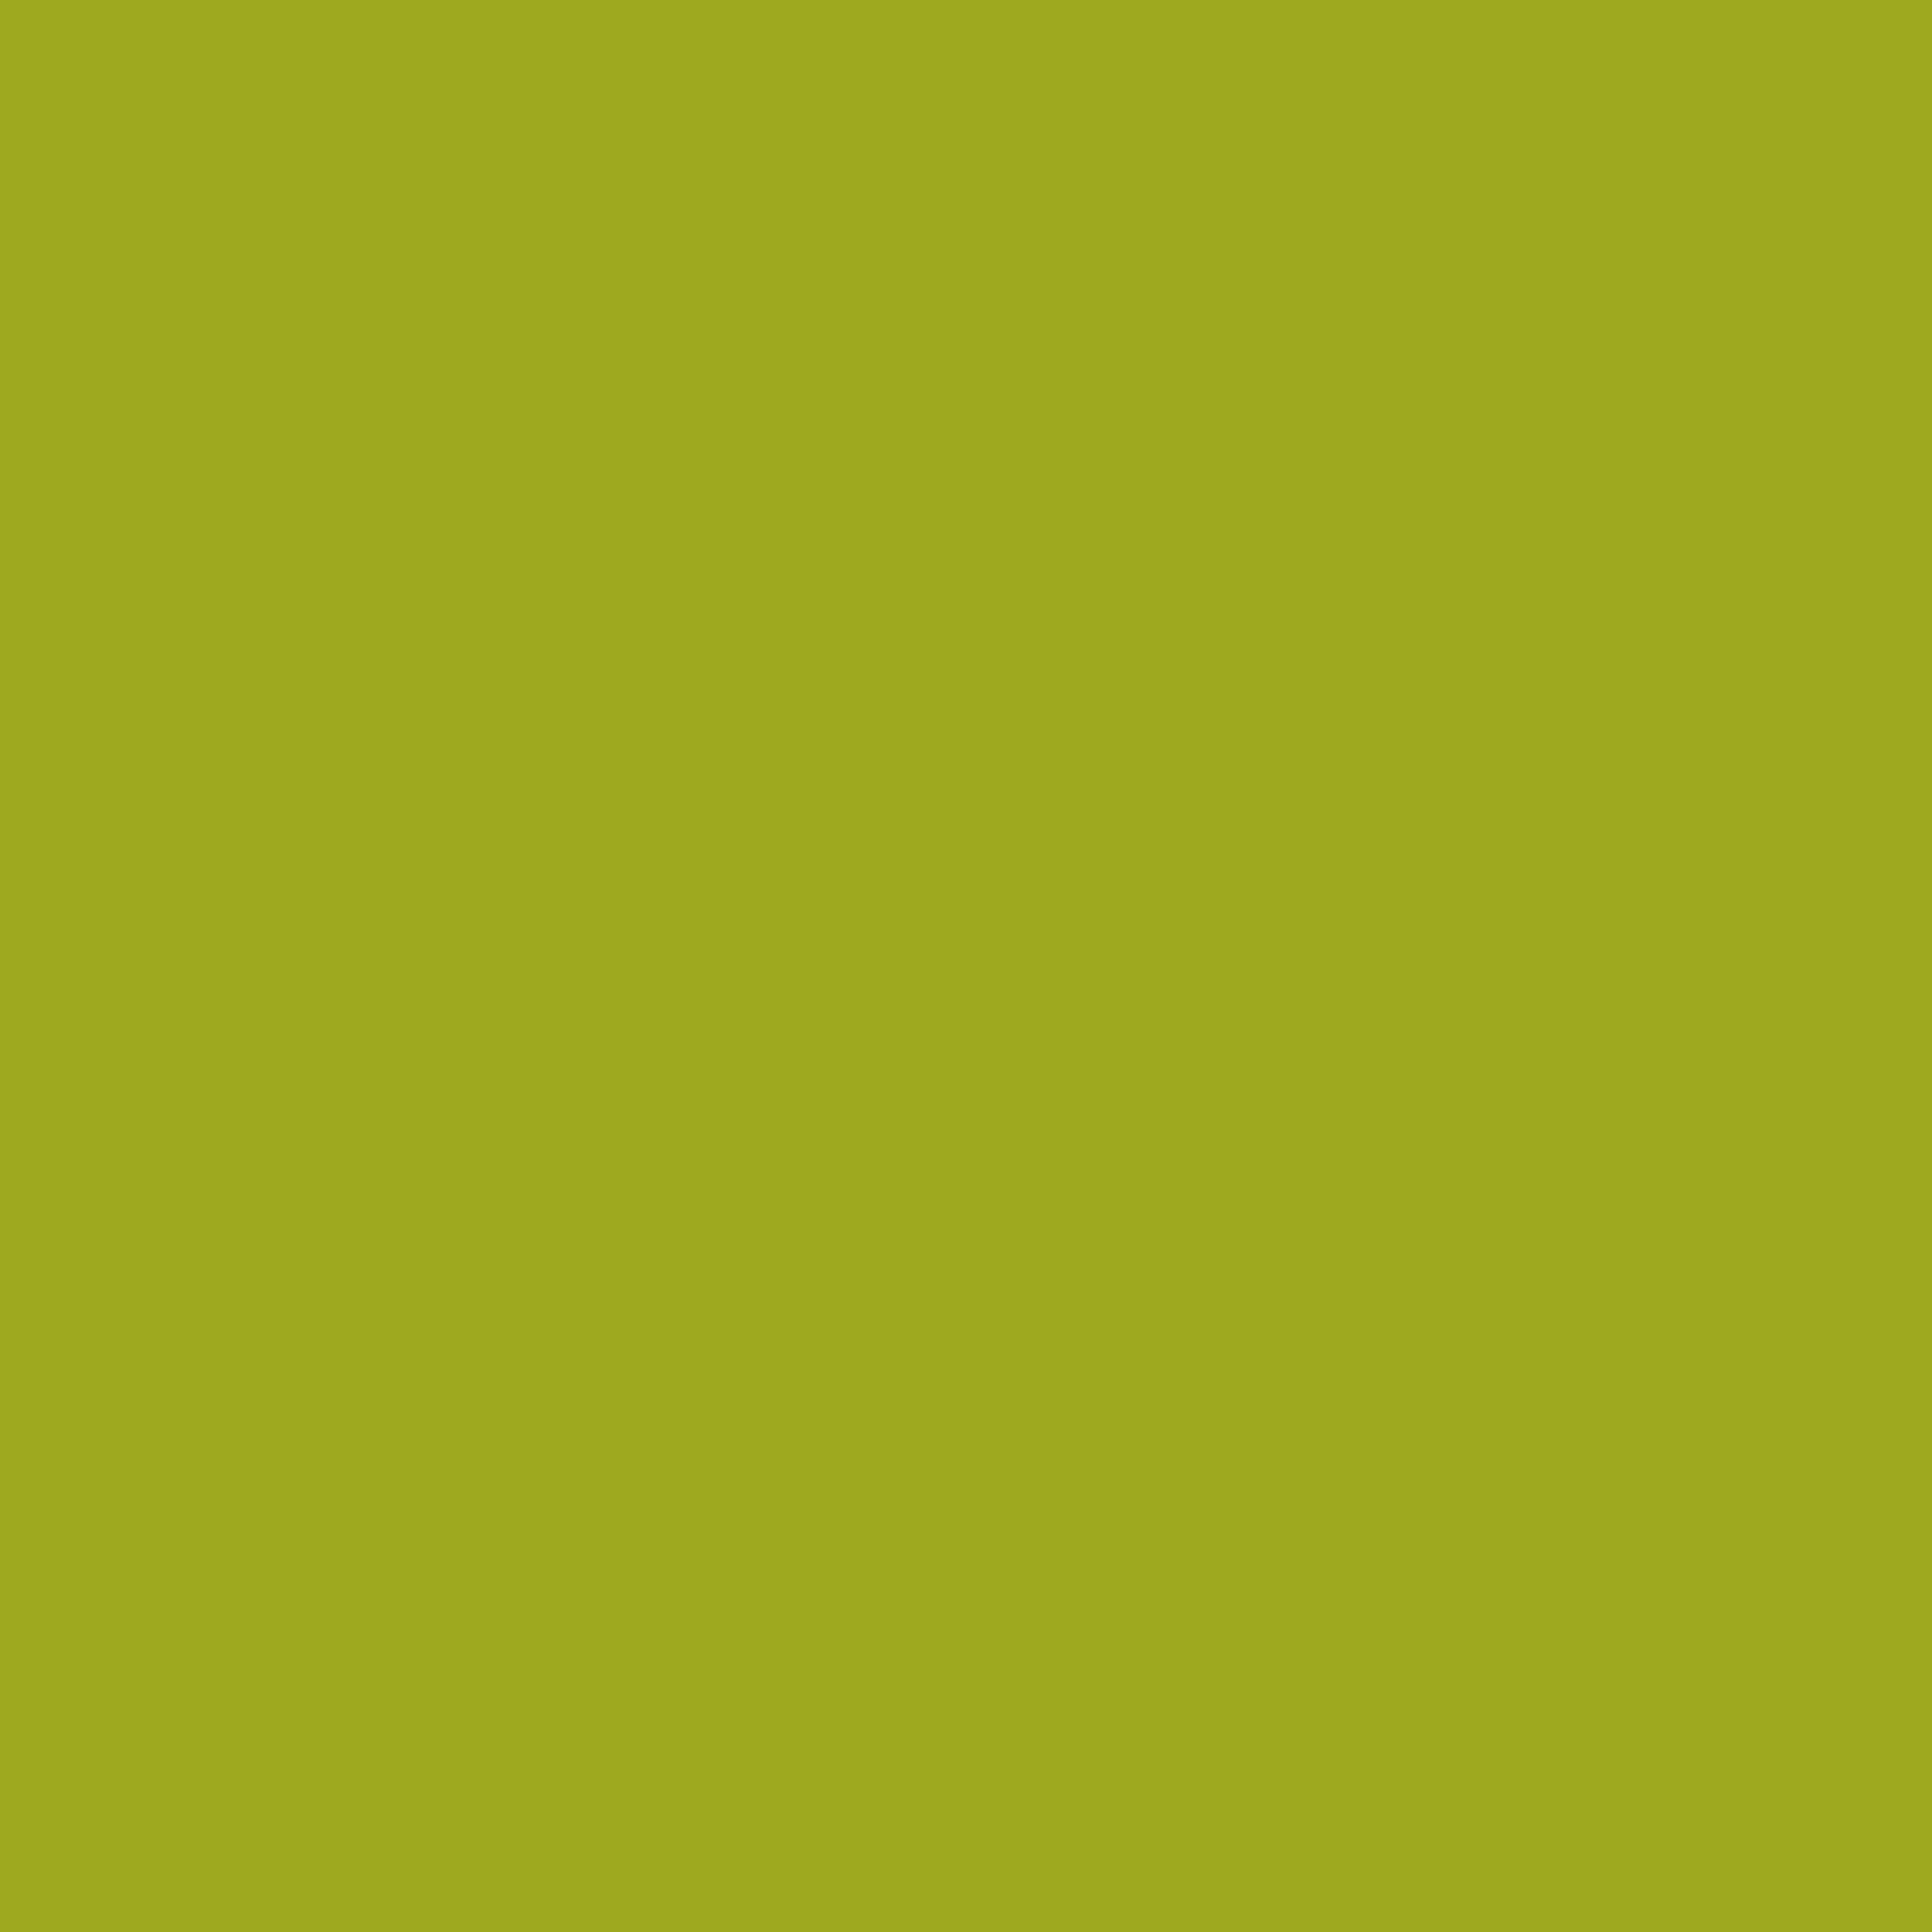 2732x2732 Citron Solid Color Background